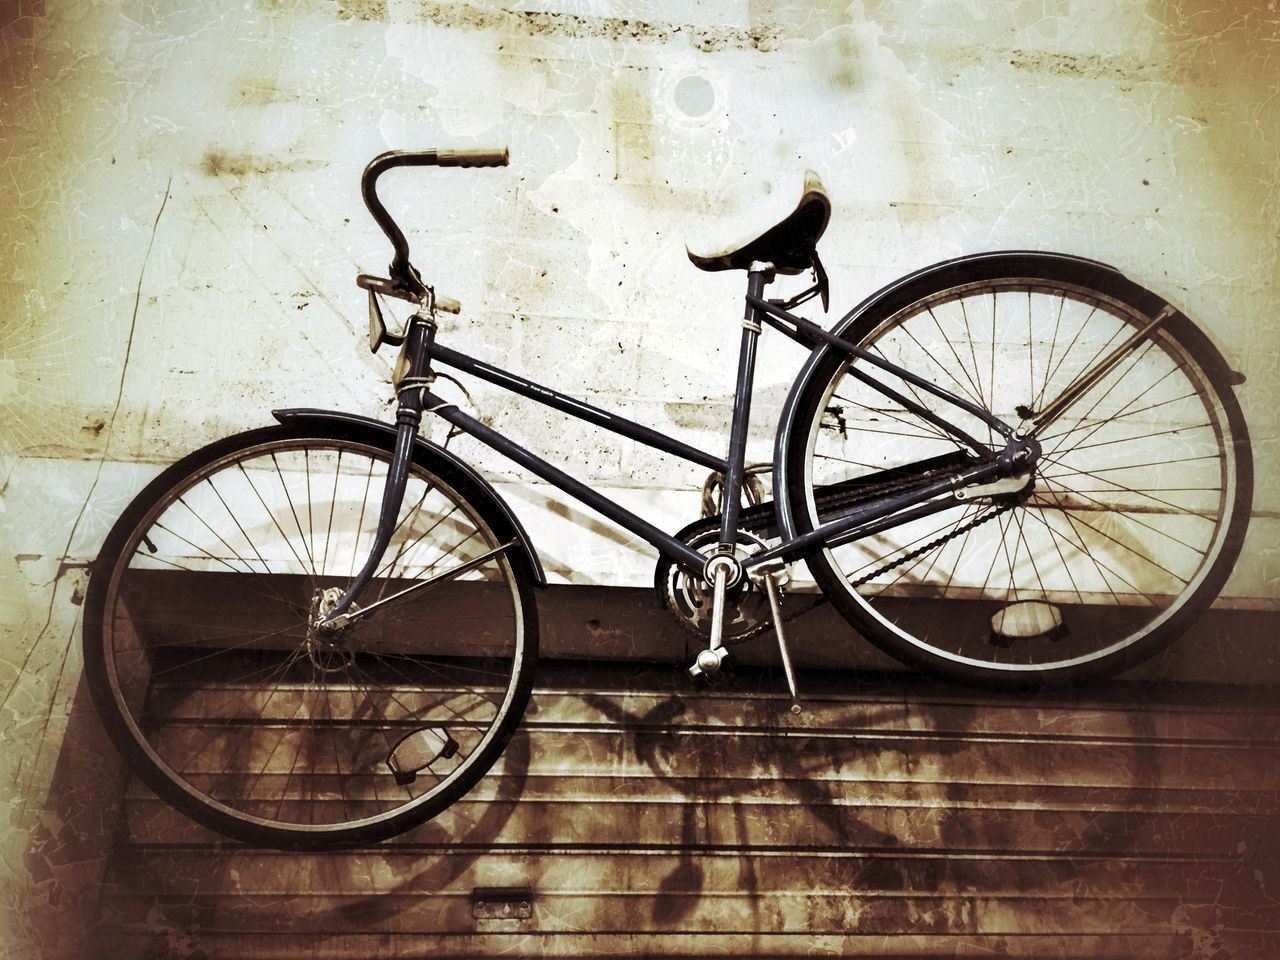 Bike Bicycle Hanging Out Warehouse Wheels Shadow Shadows On The Wall Spokes Lookup Ipstransport